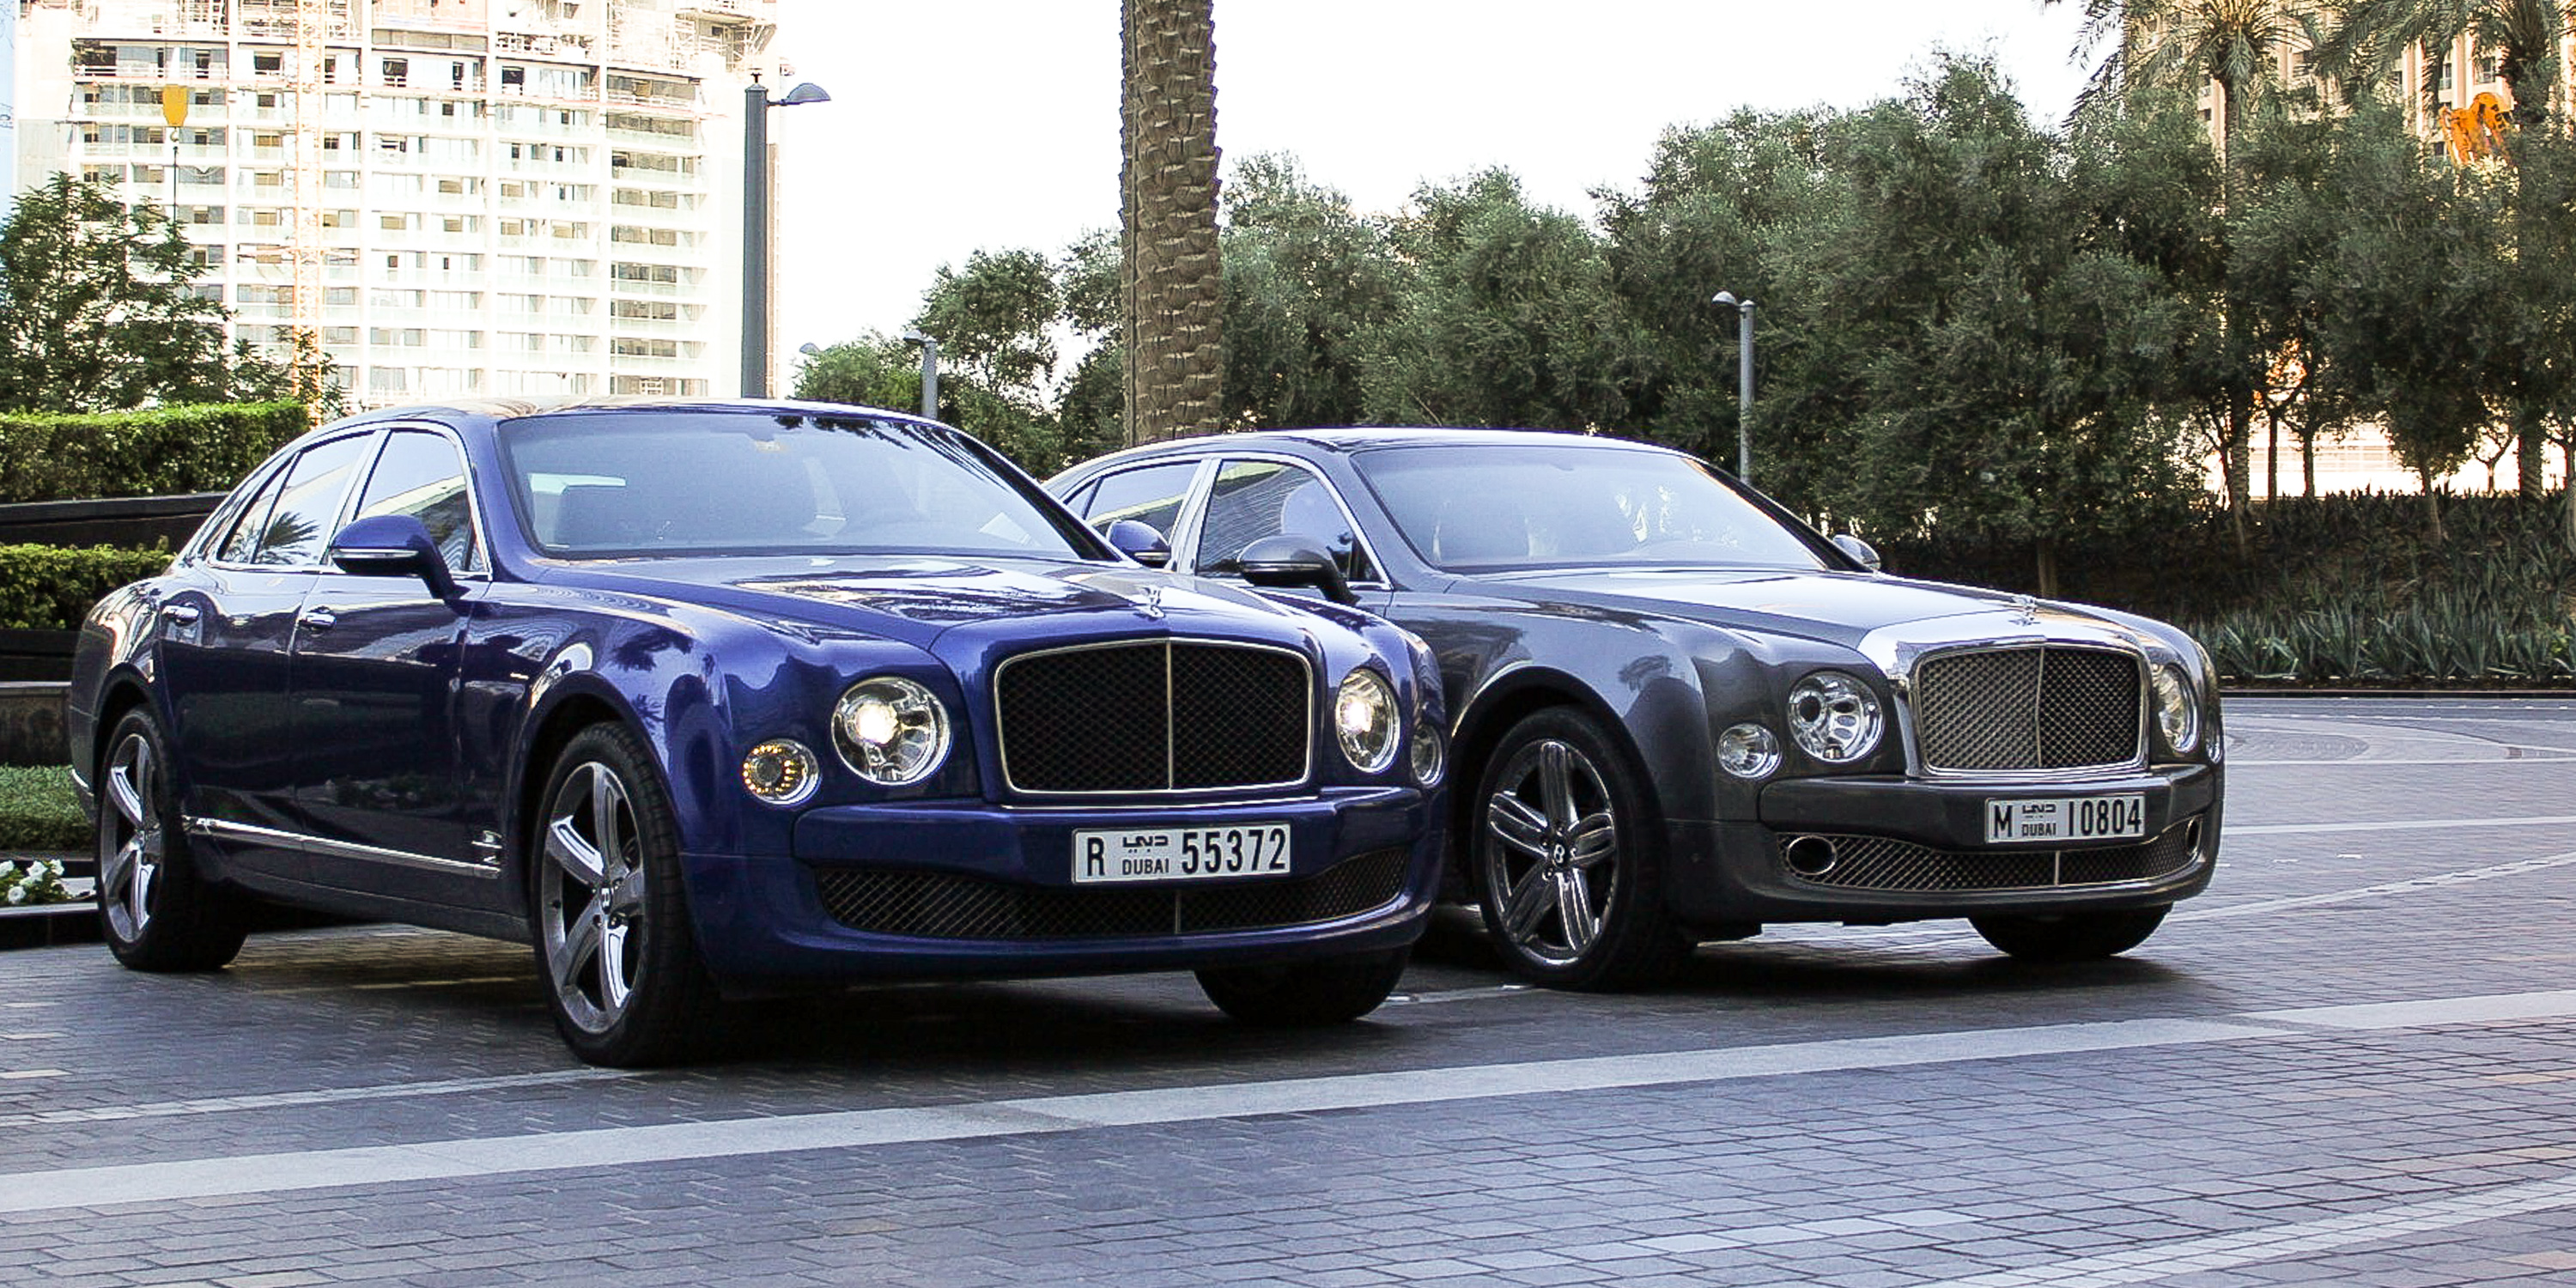 bentley continental gt owner reviews with Photos on Photos together with Blue Mercedes 6x6 At The Red Sea In Jeddah Saudi likewise 2013 Hyundai Santa Fe Active Elite And Highlander Launch Review furthermore Return To Article Car Crash Paris moreover Photos.